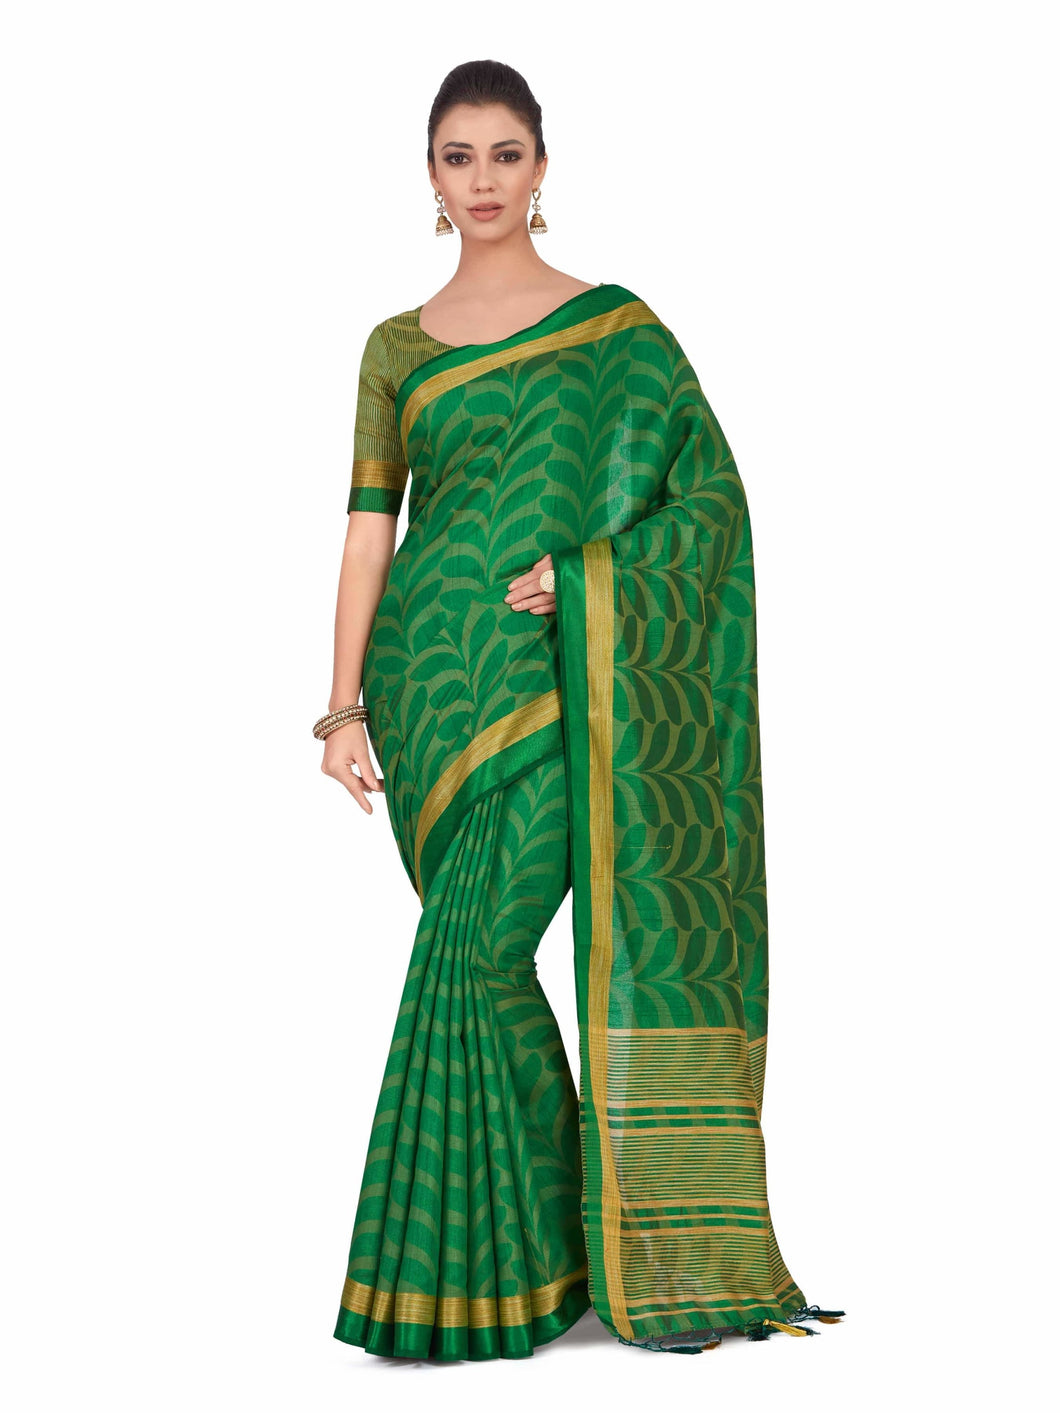 Mimosa Art  Tusser silk Wedding saree Kanjivarm style With Running Blouse Color: Green (4327-2278-SD-BGRN)